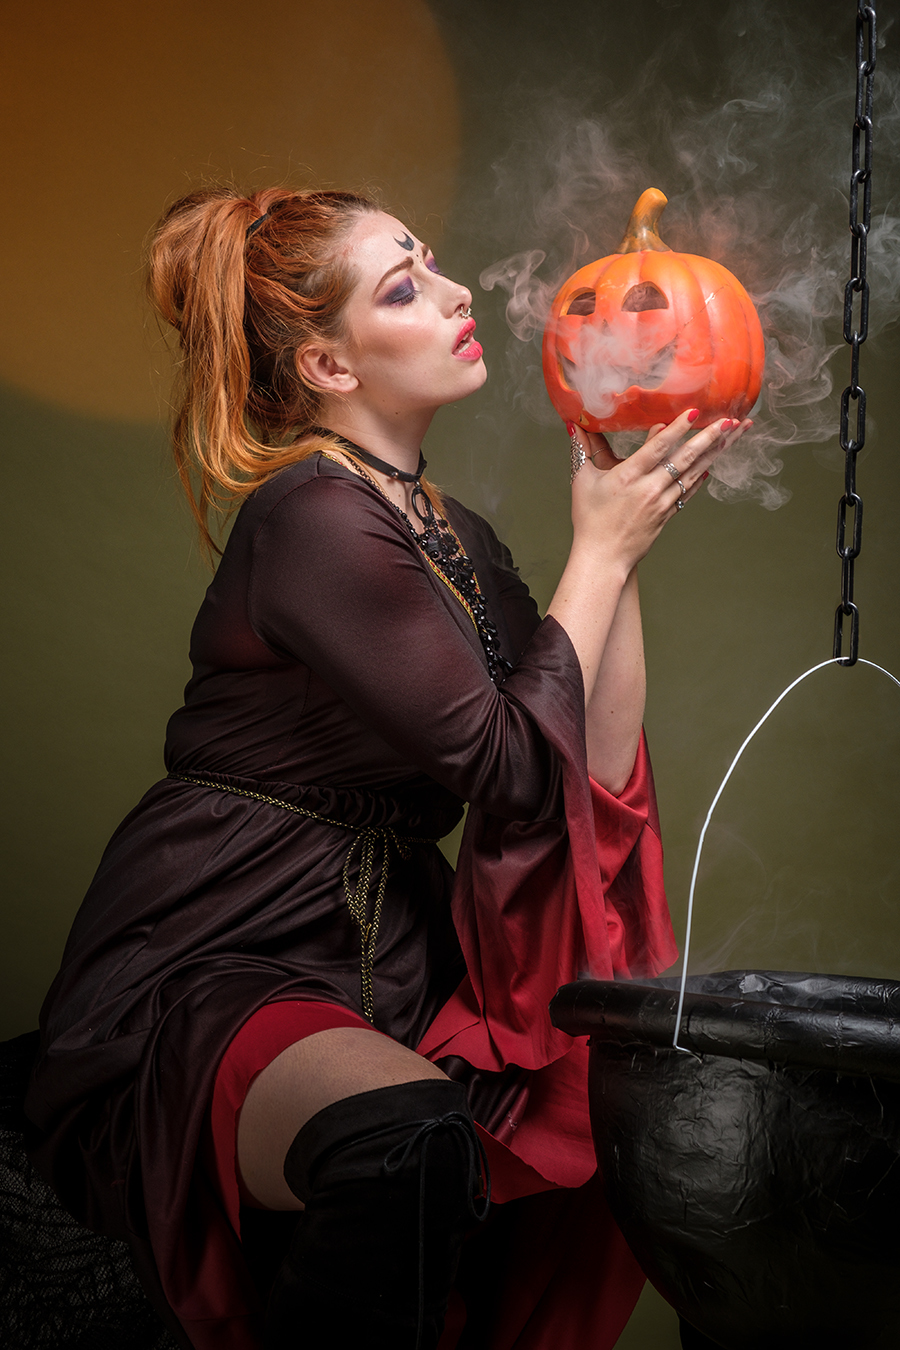 Pumpkin spirits..... / Photography by Gray2, Model Sinopa Rin, Makeup by Sinopa Rin, Post processing by Gray2, Stylist Sinopa Rin, Taken at Fareham Studio, Hair styling by Sinopa Rin, Designer Sinopa Rin, Designer Andy Gaden / Uploaded 29th October 2018 @ 04:03 PM